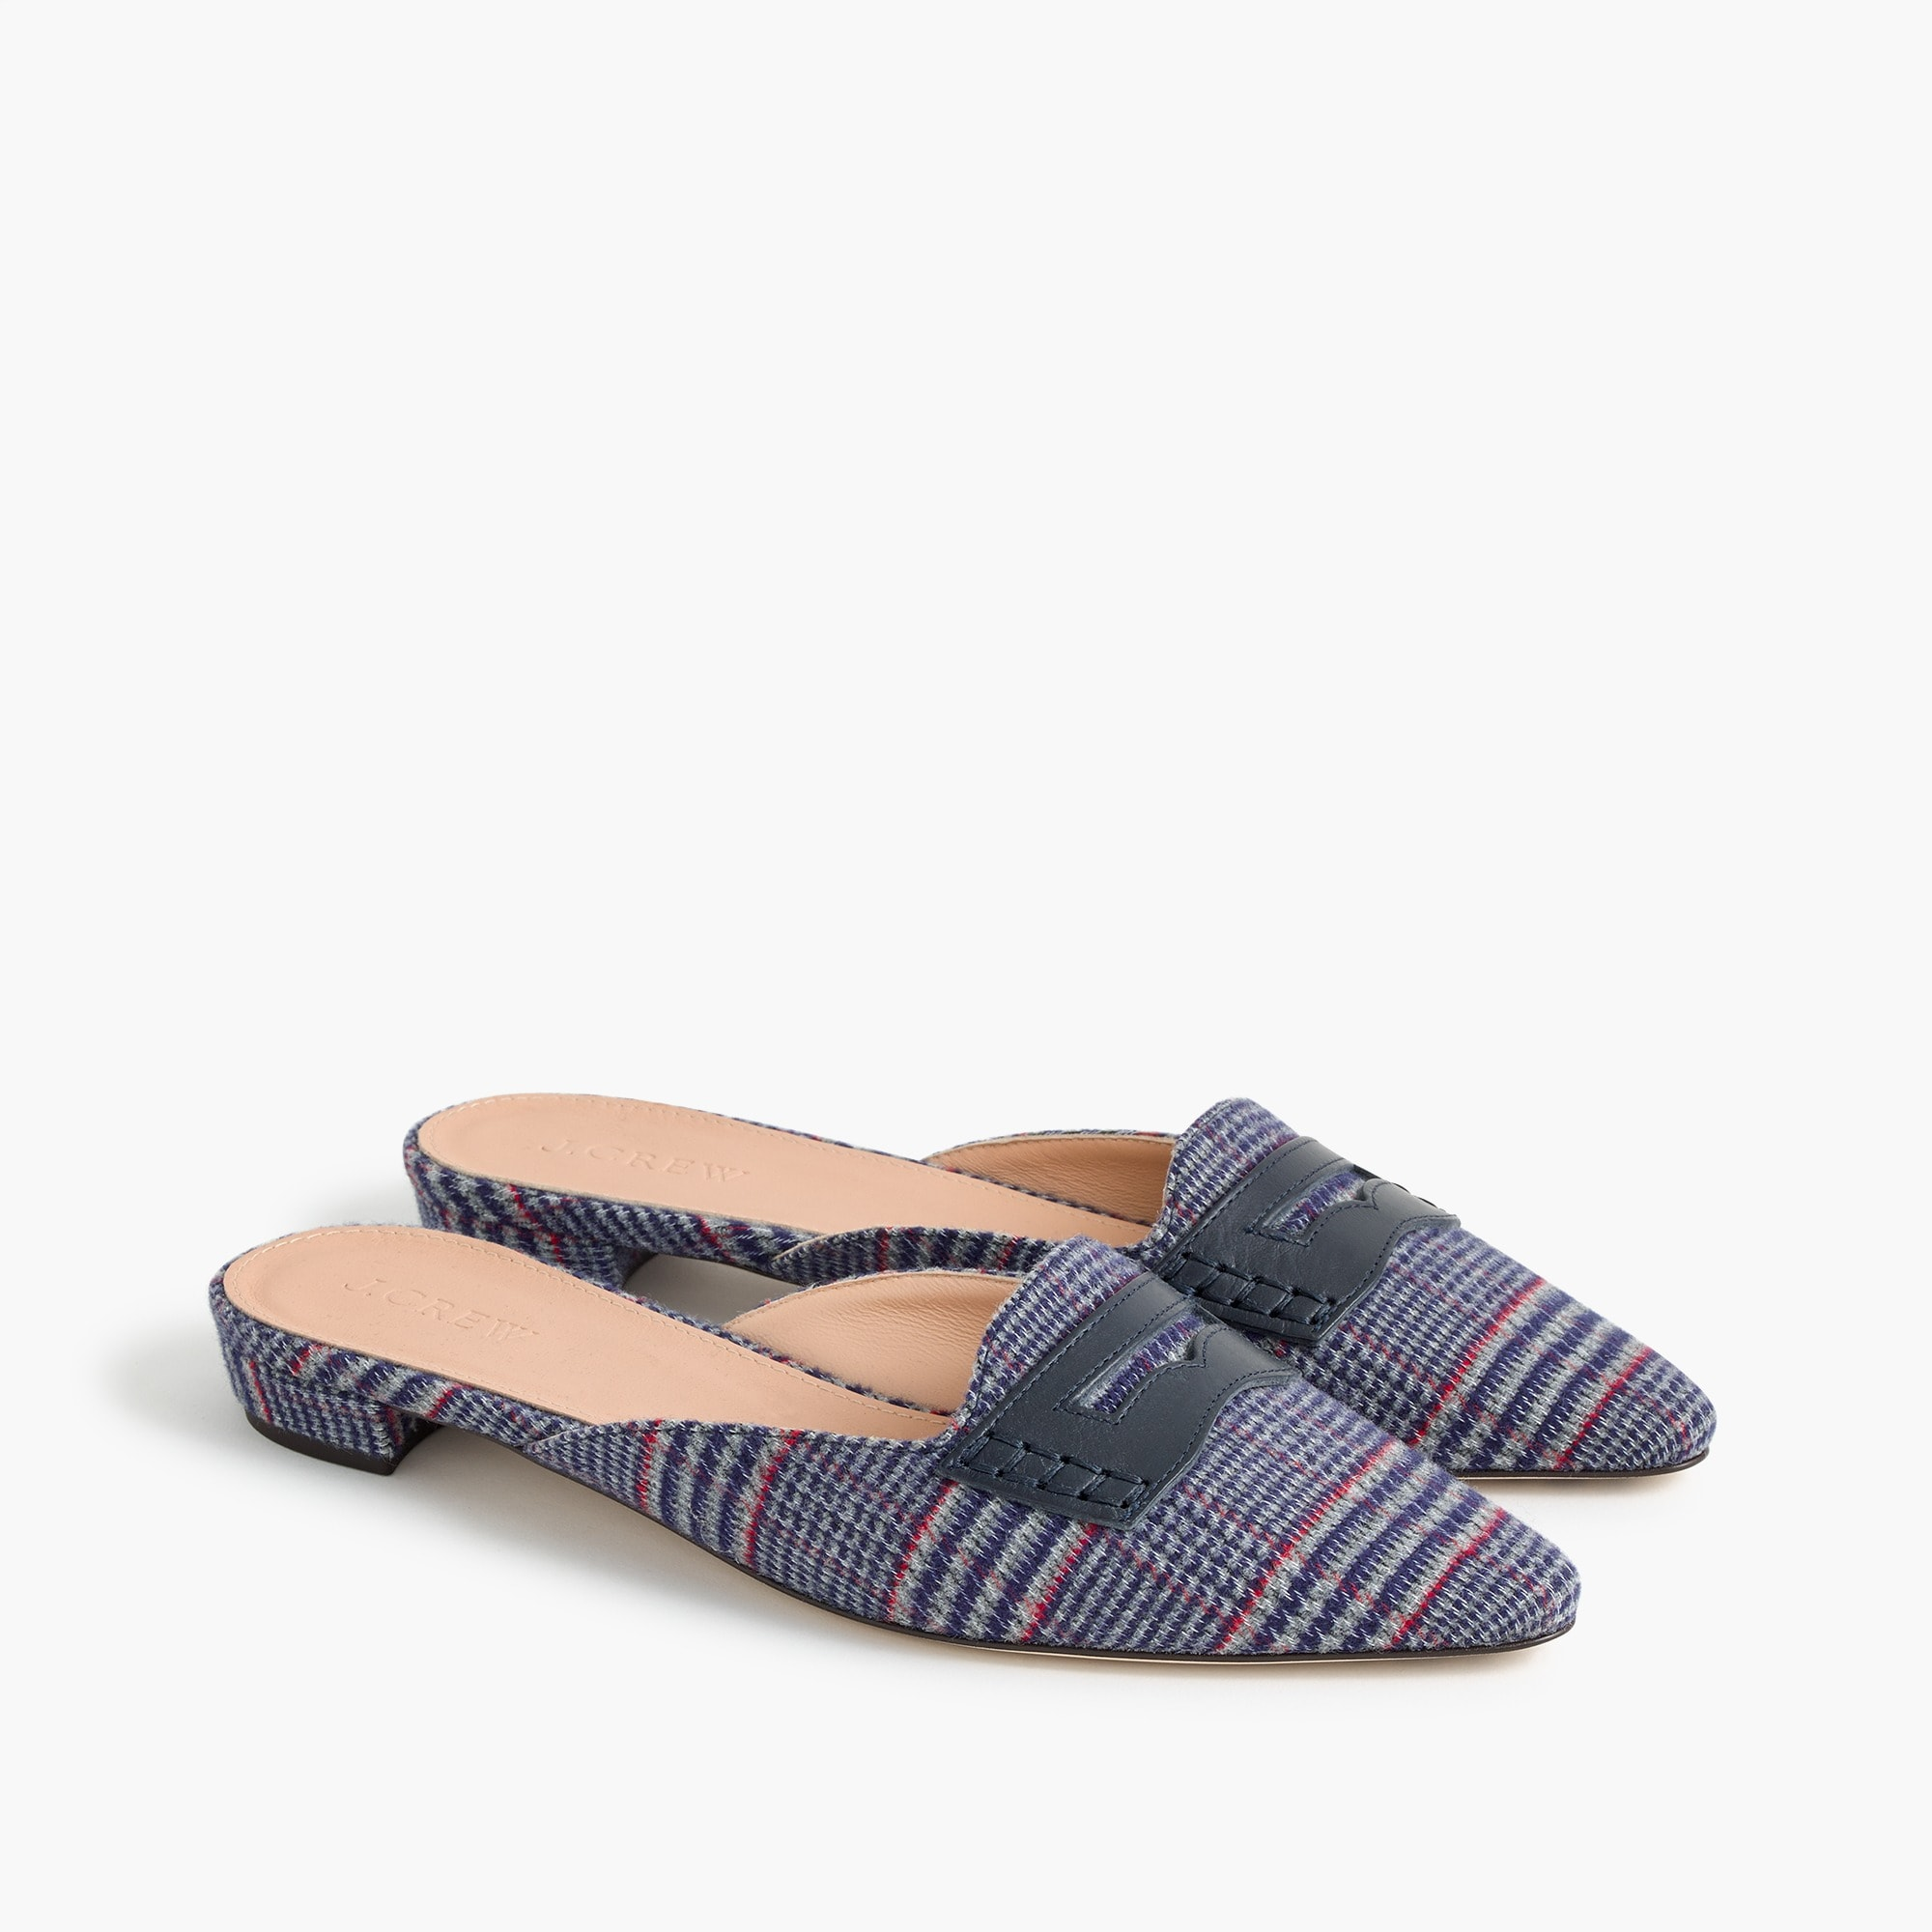 Image 3 for Tweed loafer mules